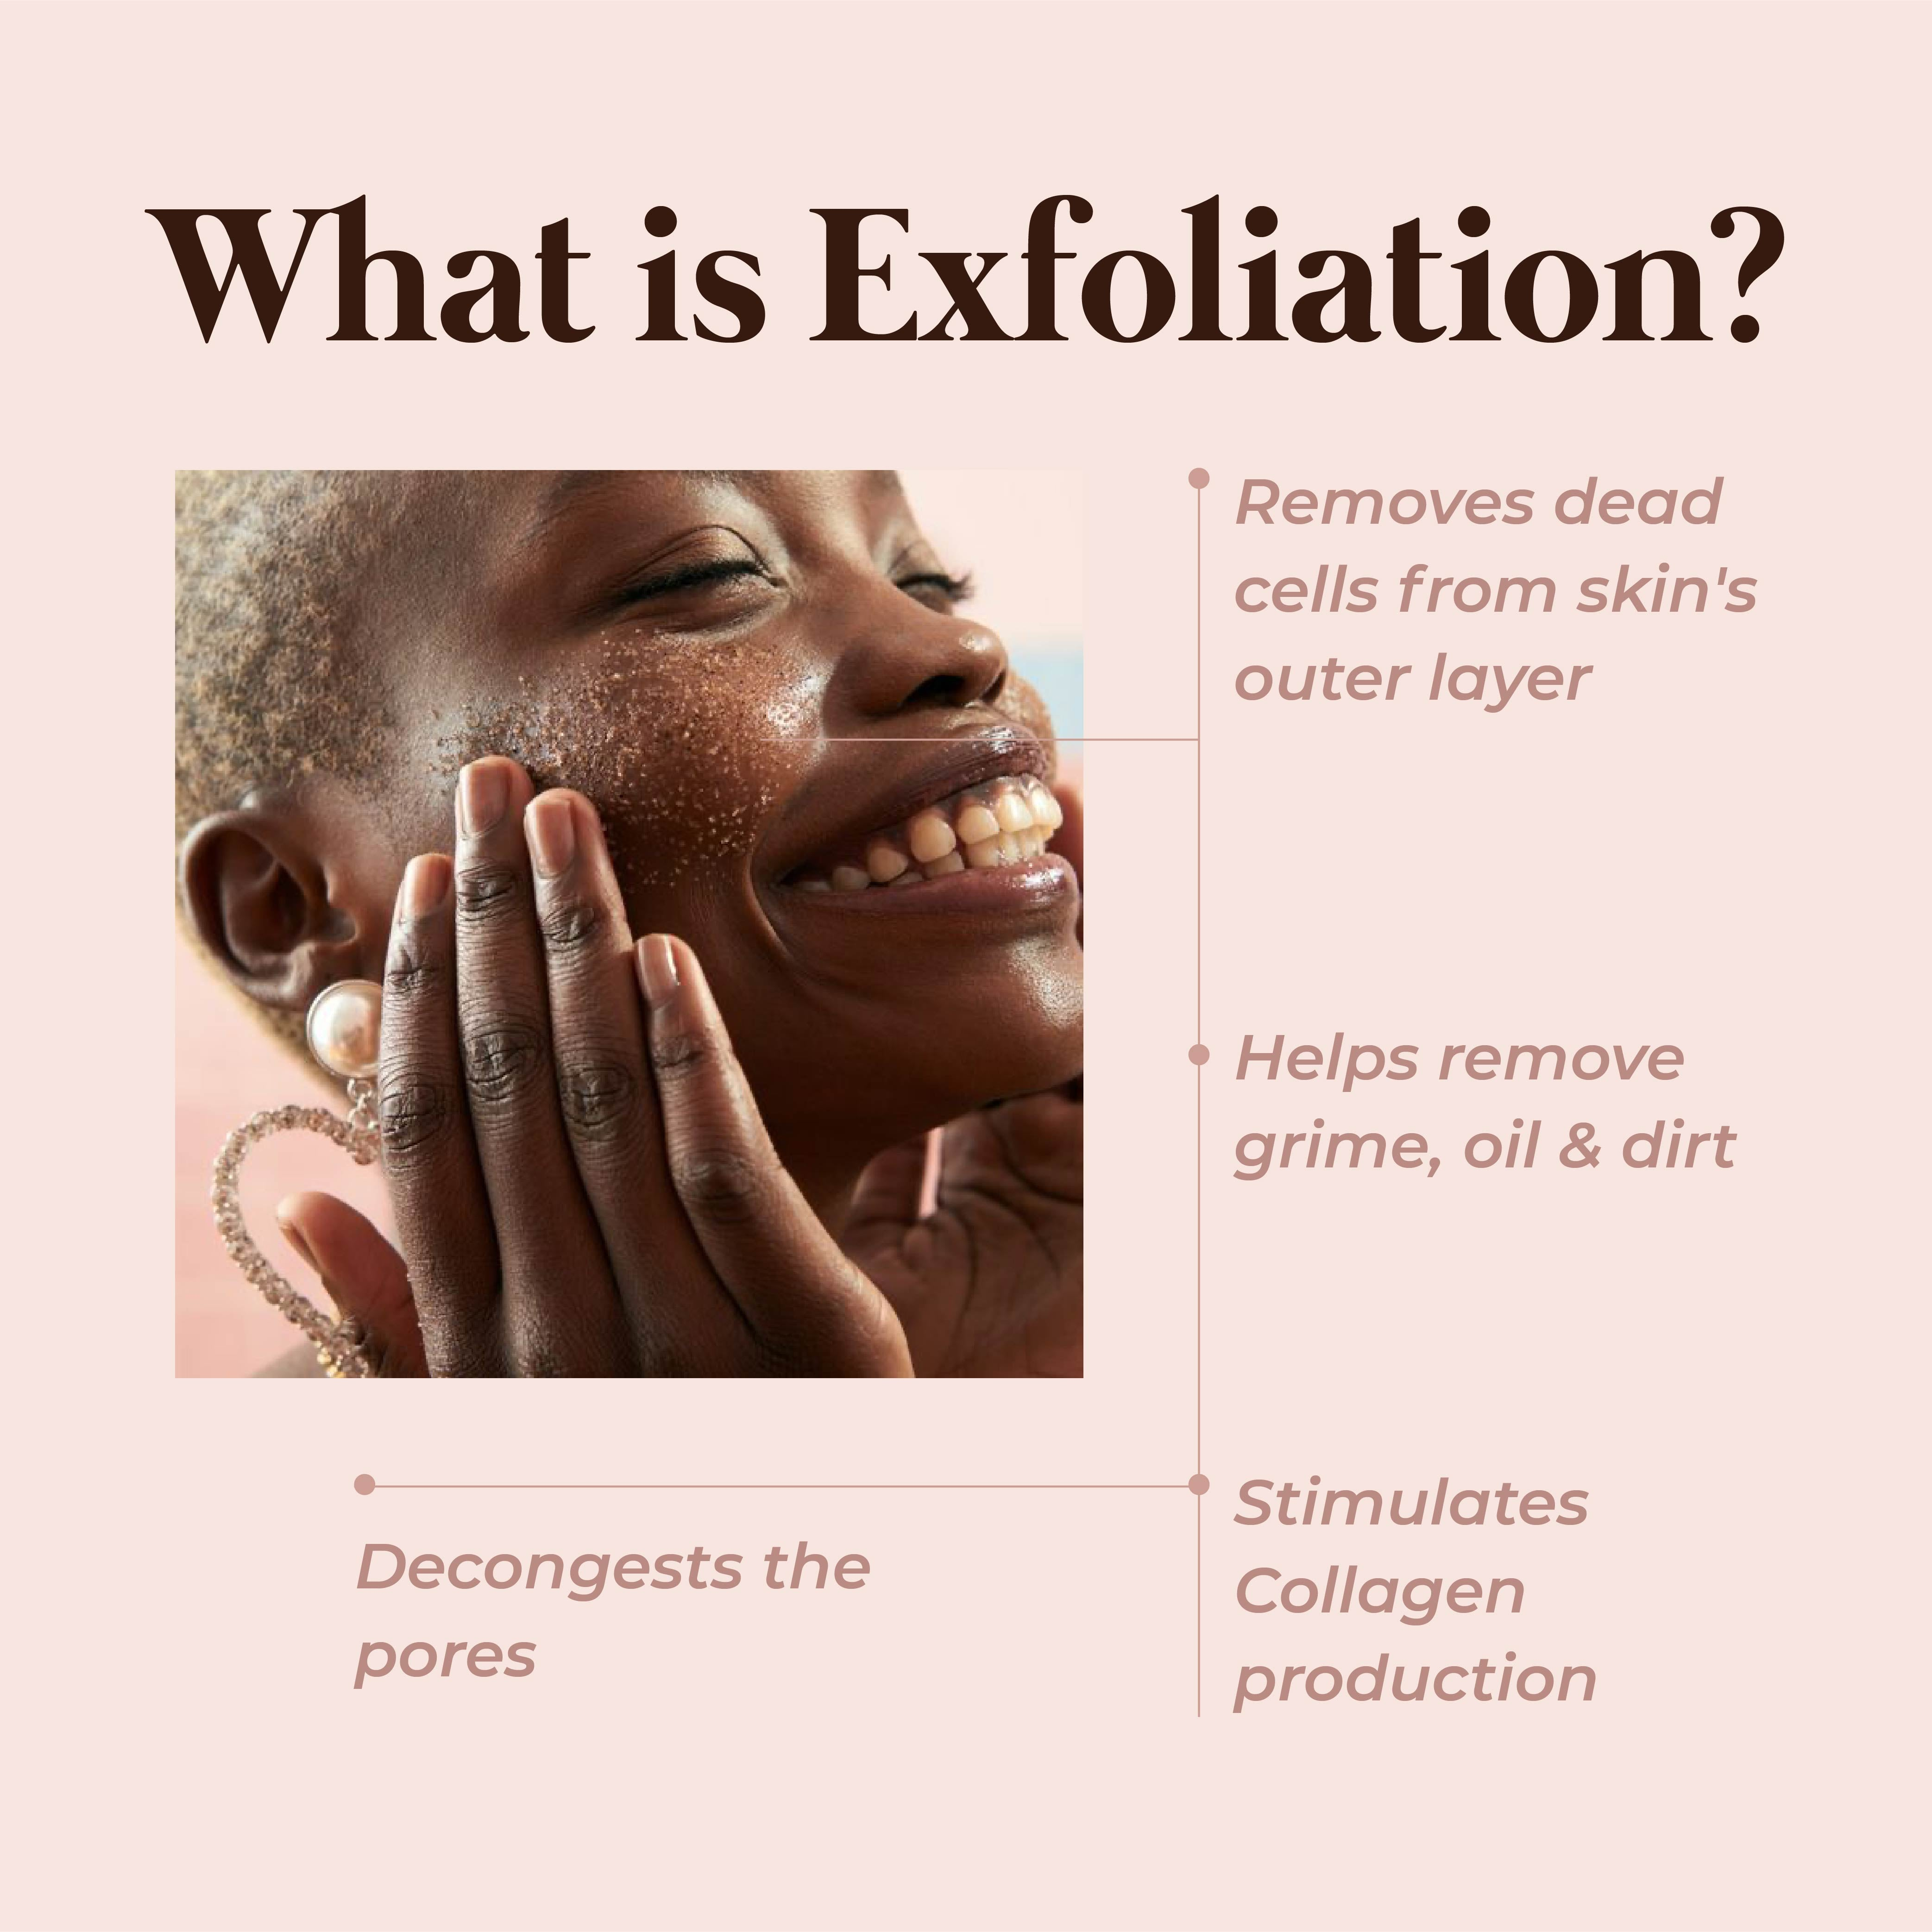 This is an image of what is exfoliation on www.sublimelife.in